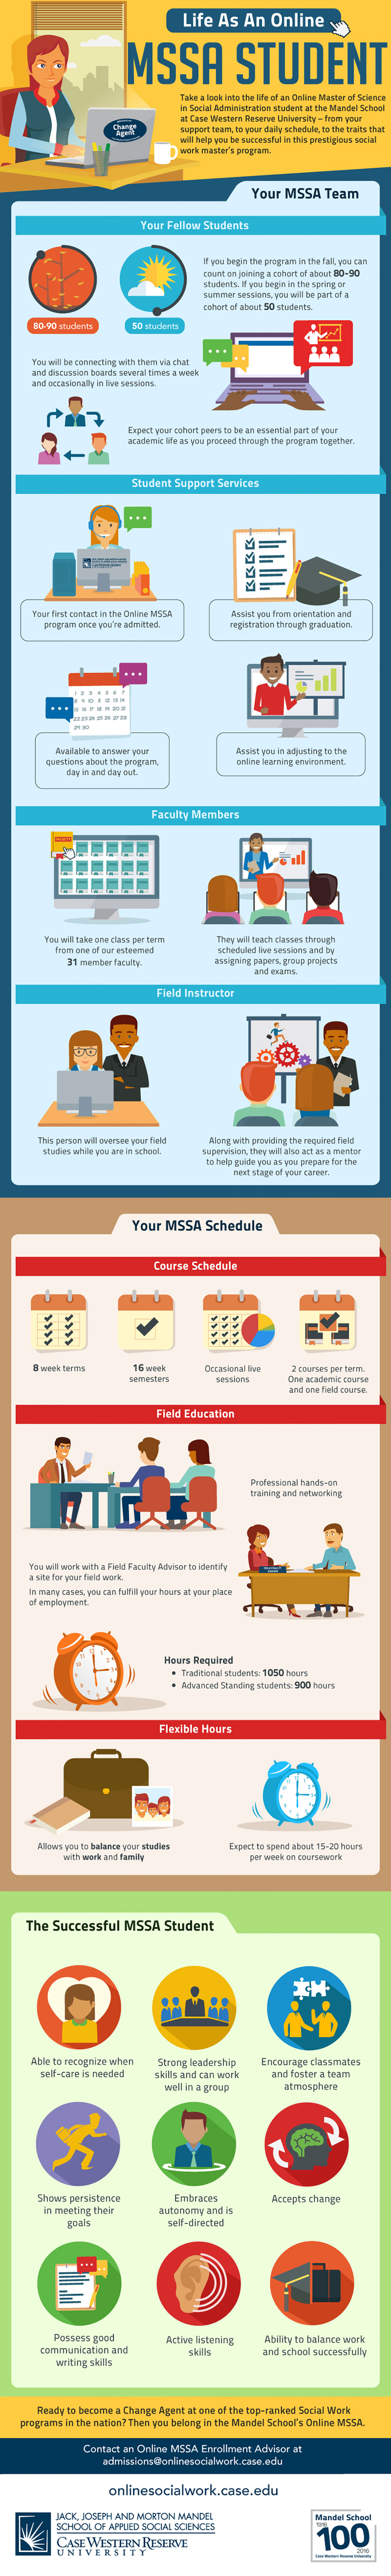 An infographic about life as an online MSSA student by Case Western Reserve University